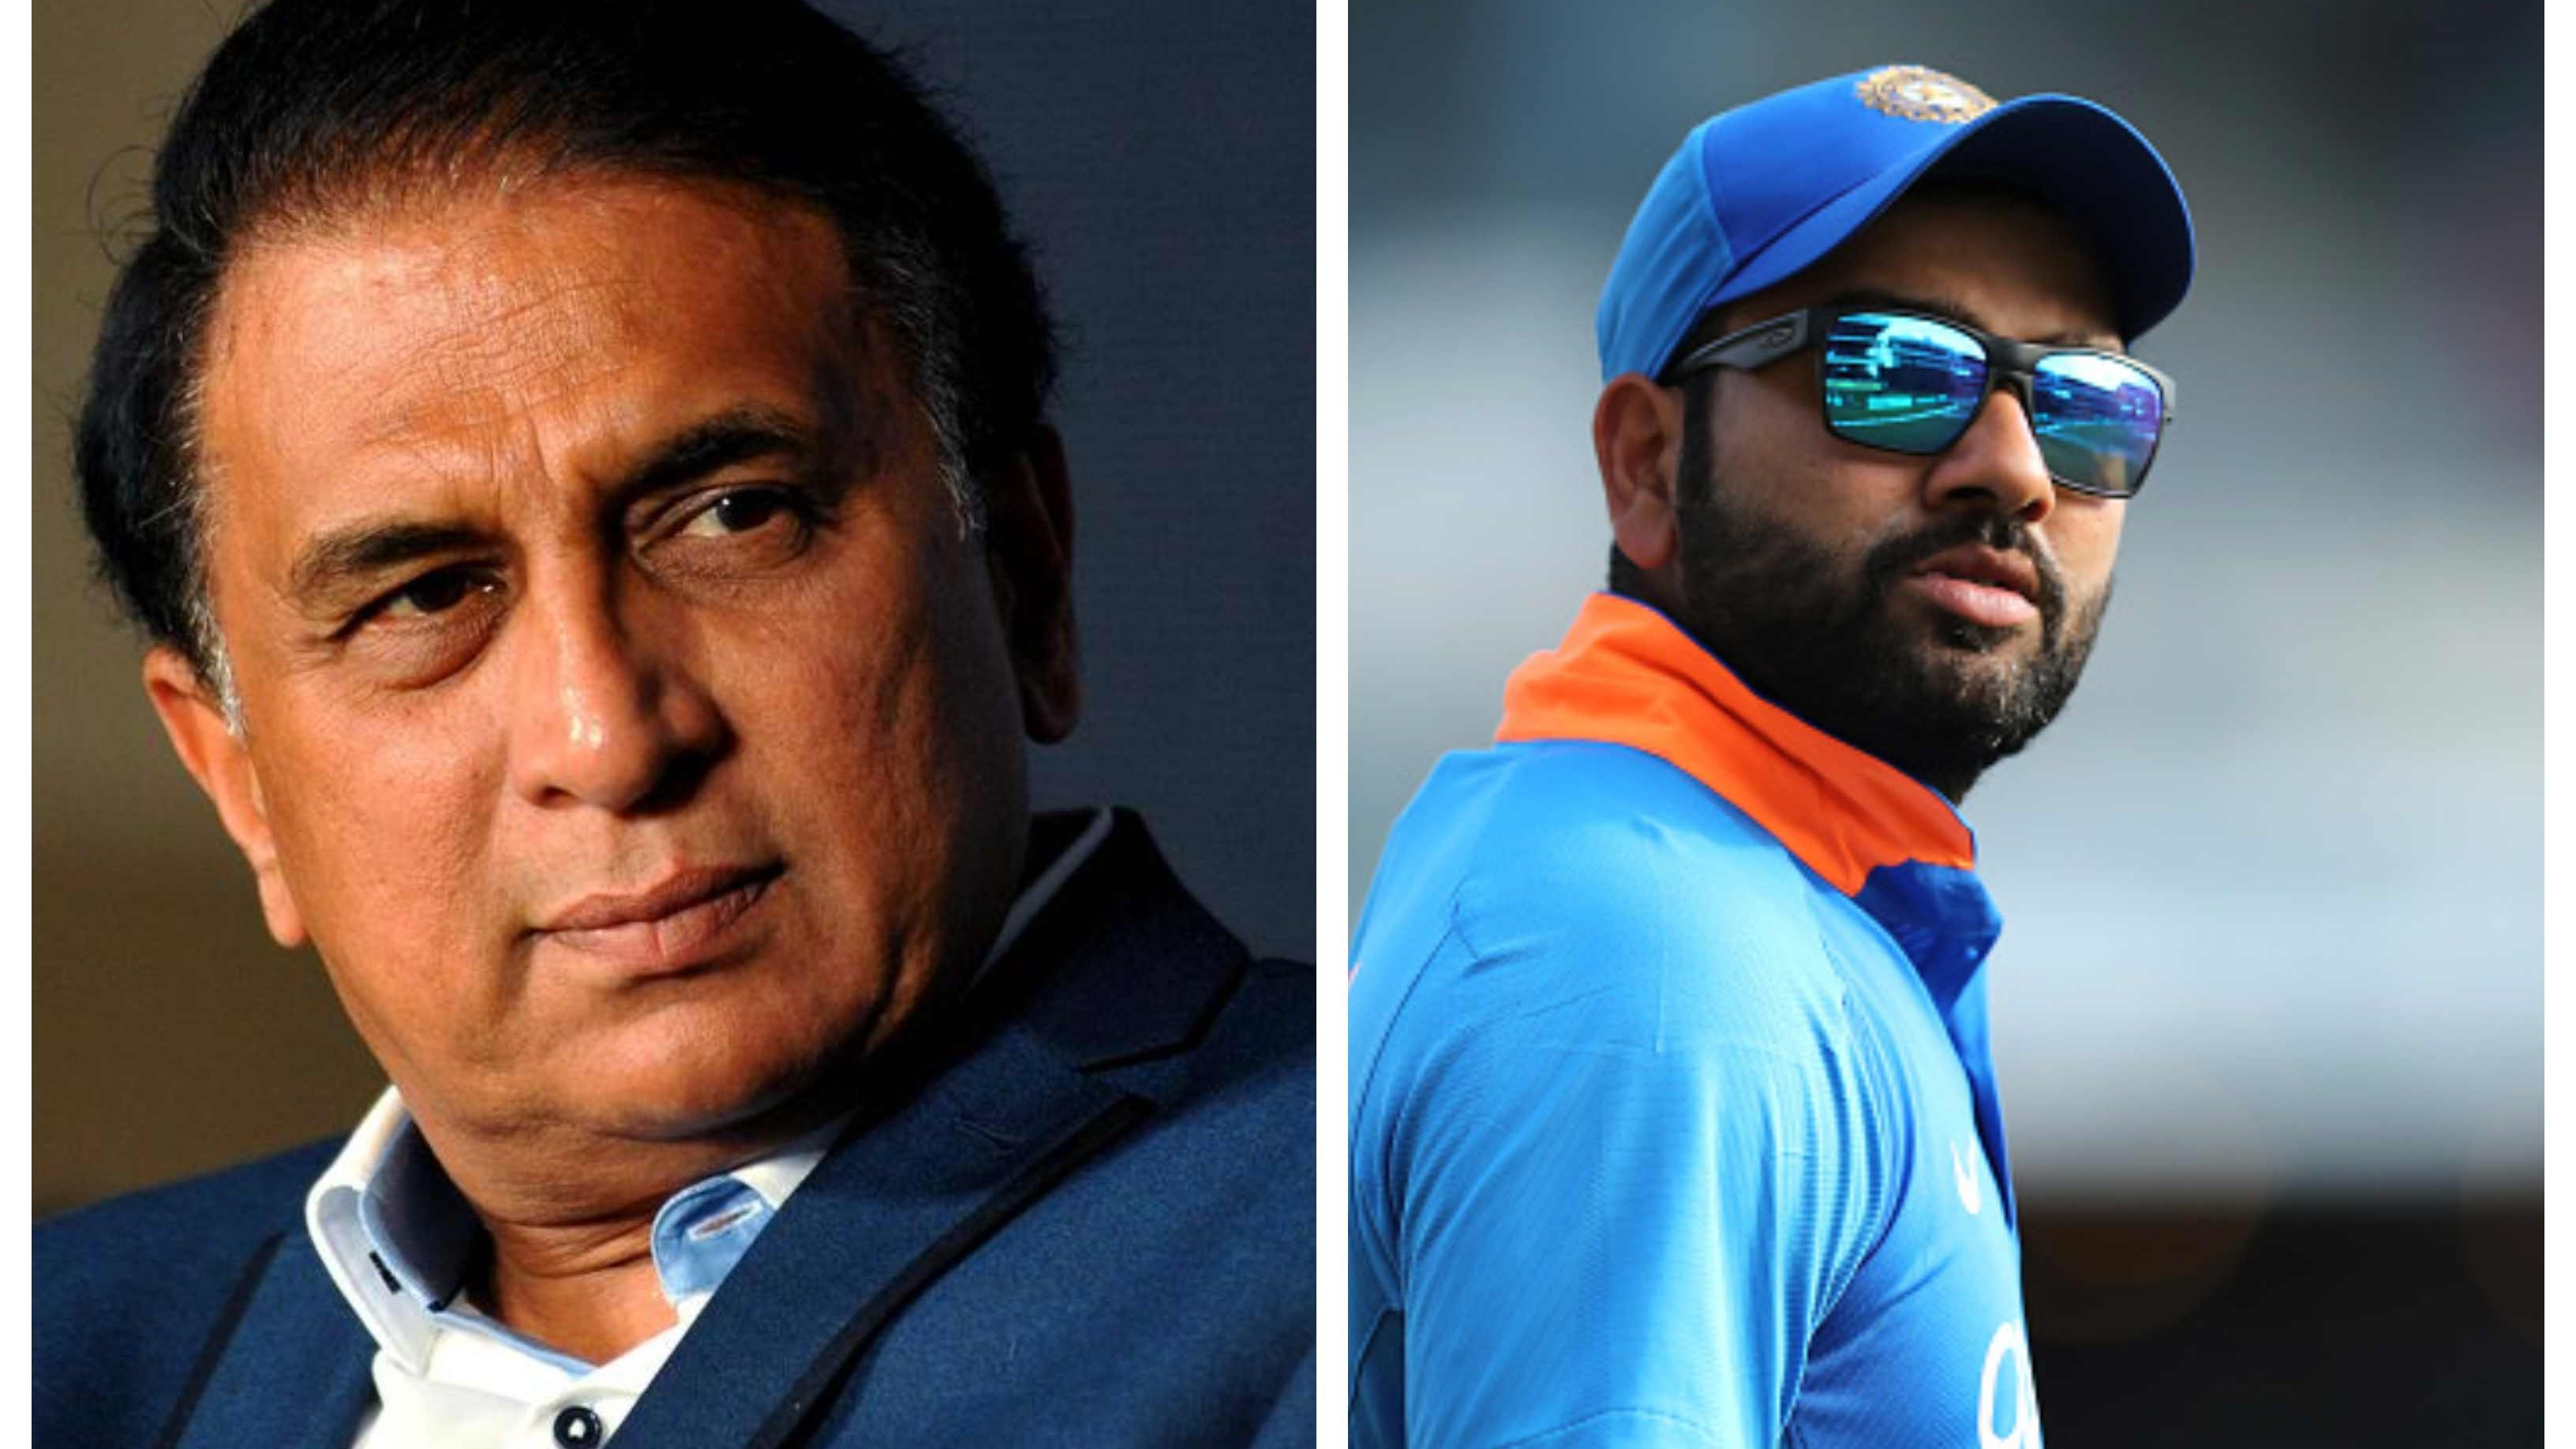 AUS v IND 2020-21: 'Nothing wrong if BCCI wants to put Rohit through another fitness test' – Gavaskar